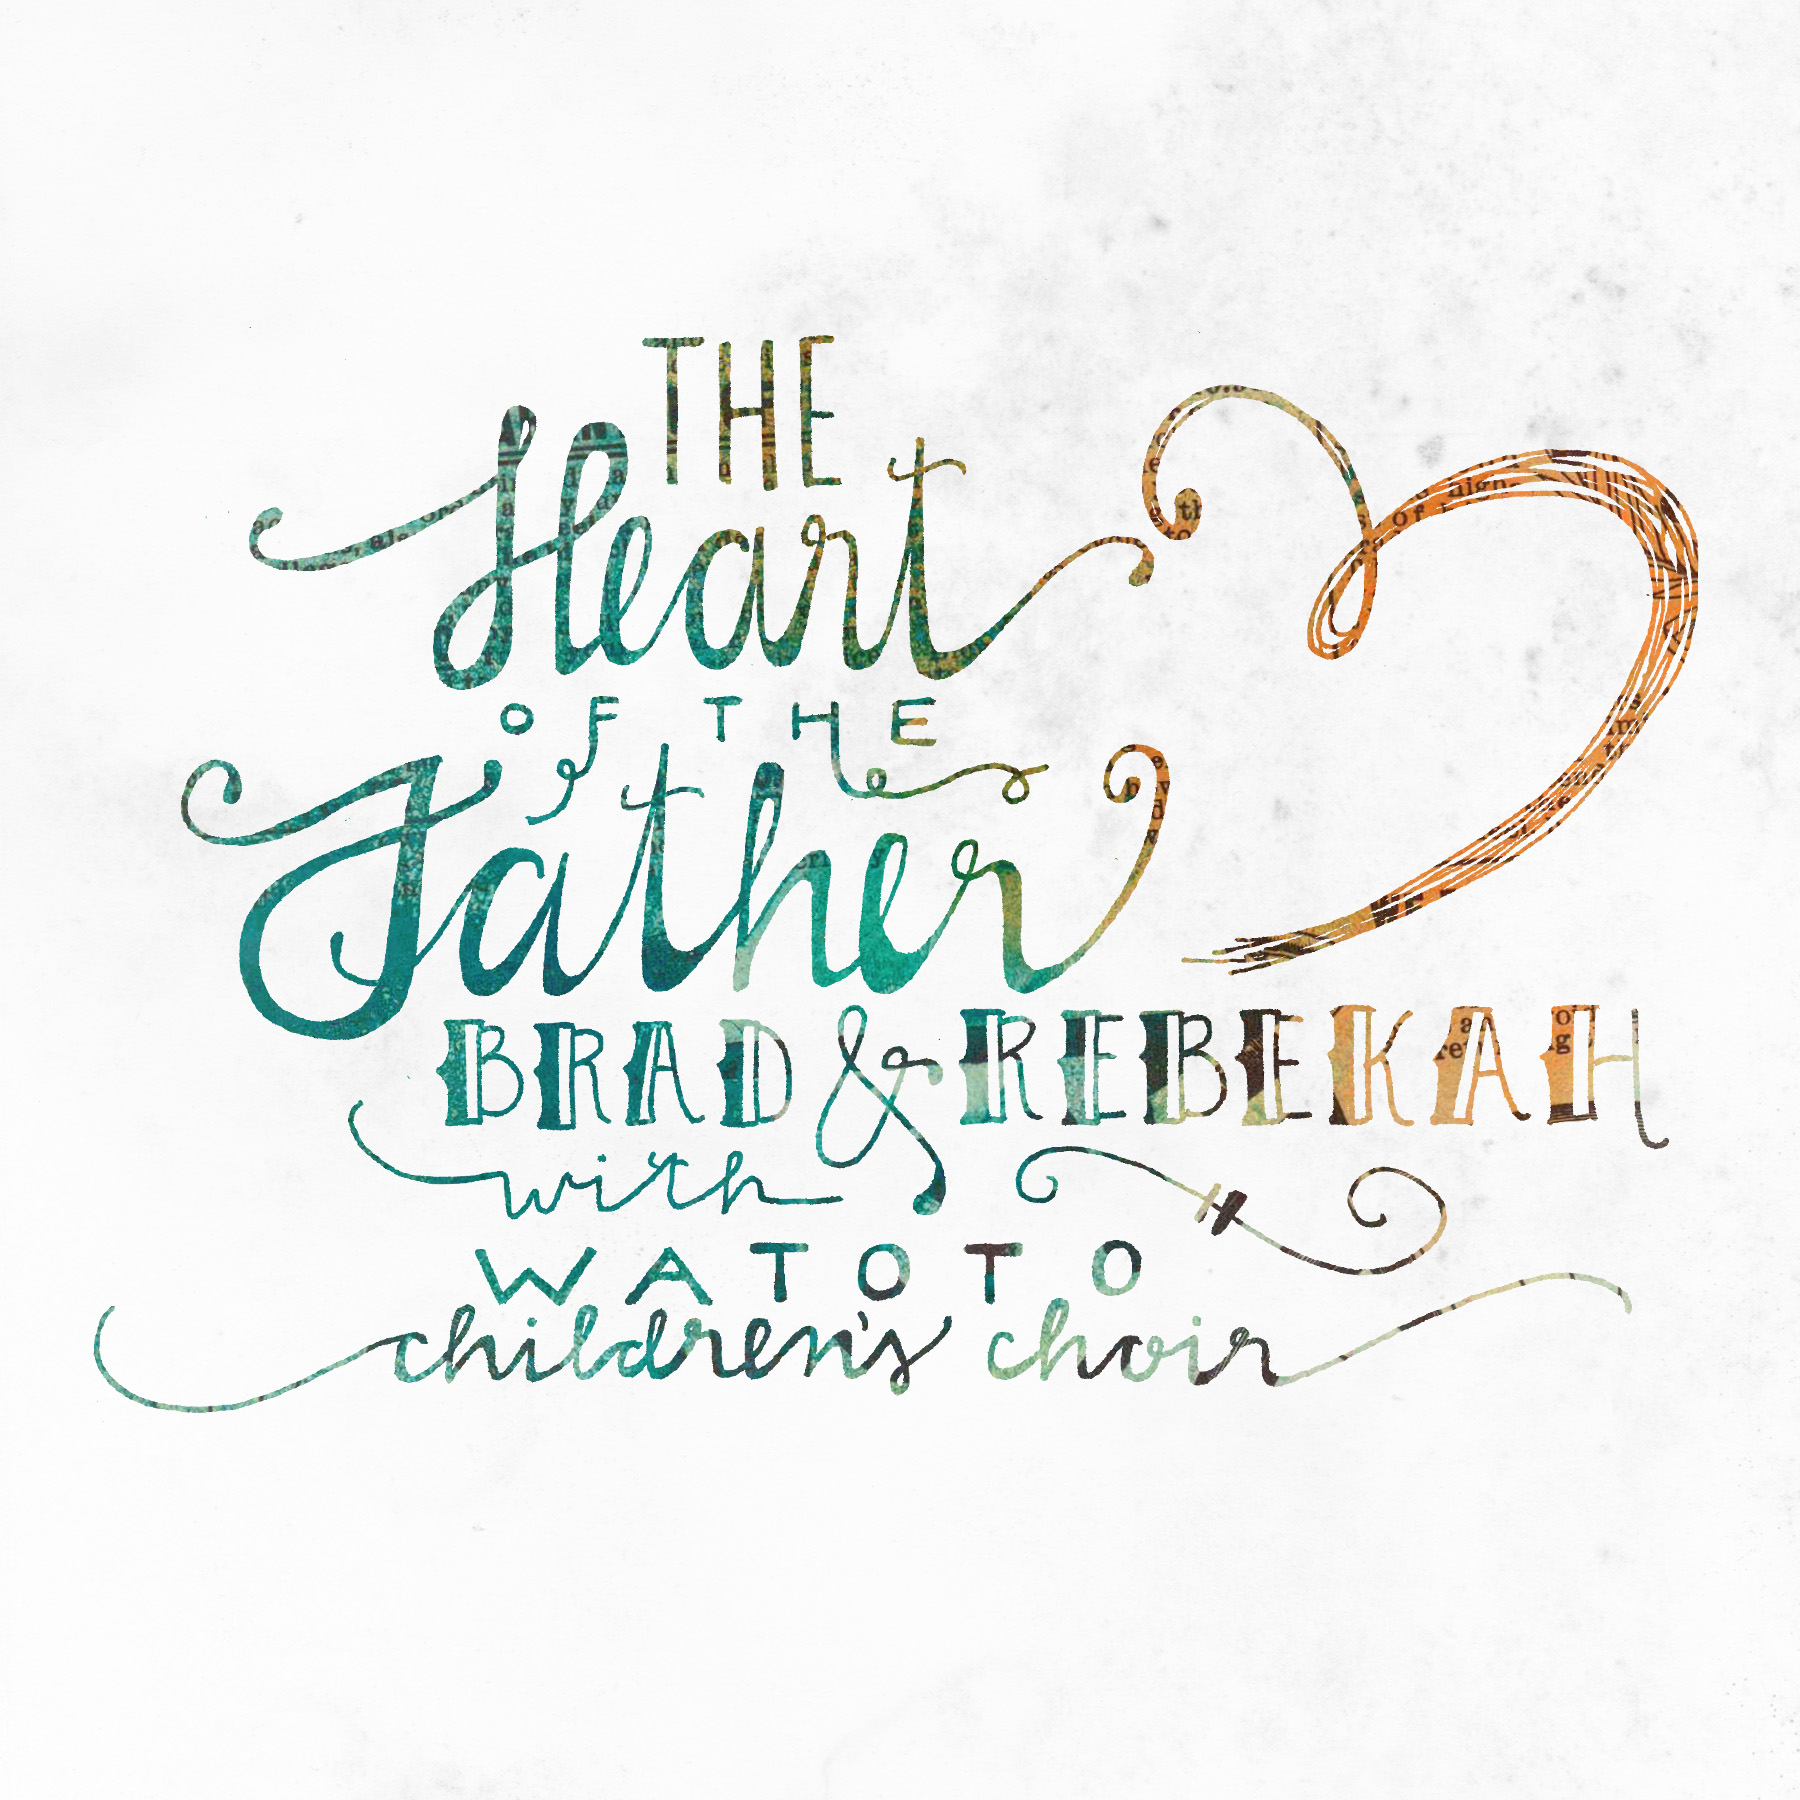 Brad and Rebekah - Heart of the Father (1800).jpg